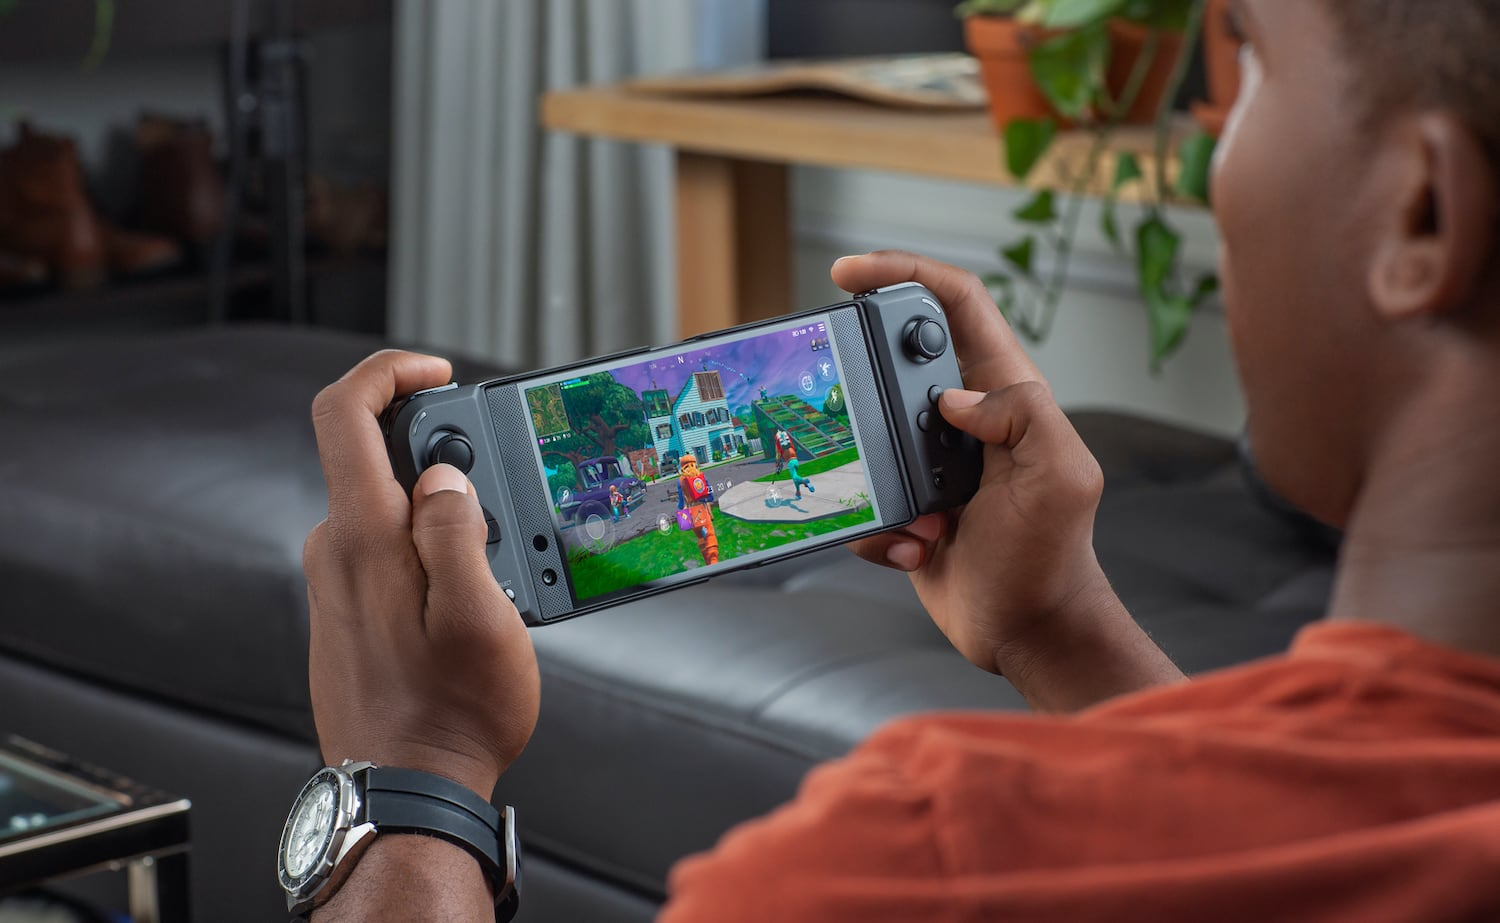 View from behind of a person holding the Android gaming controller and playing a game on it